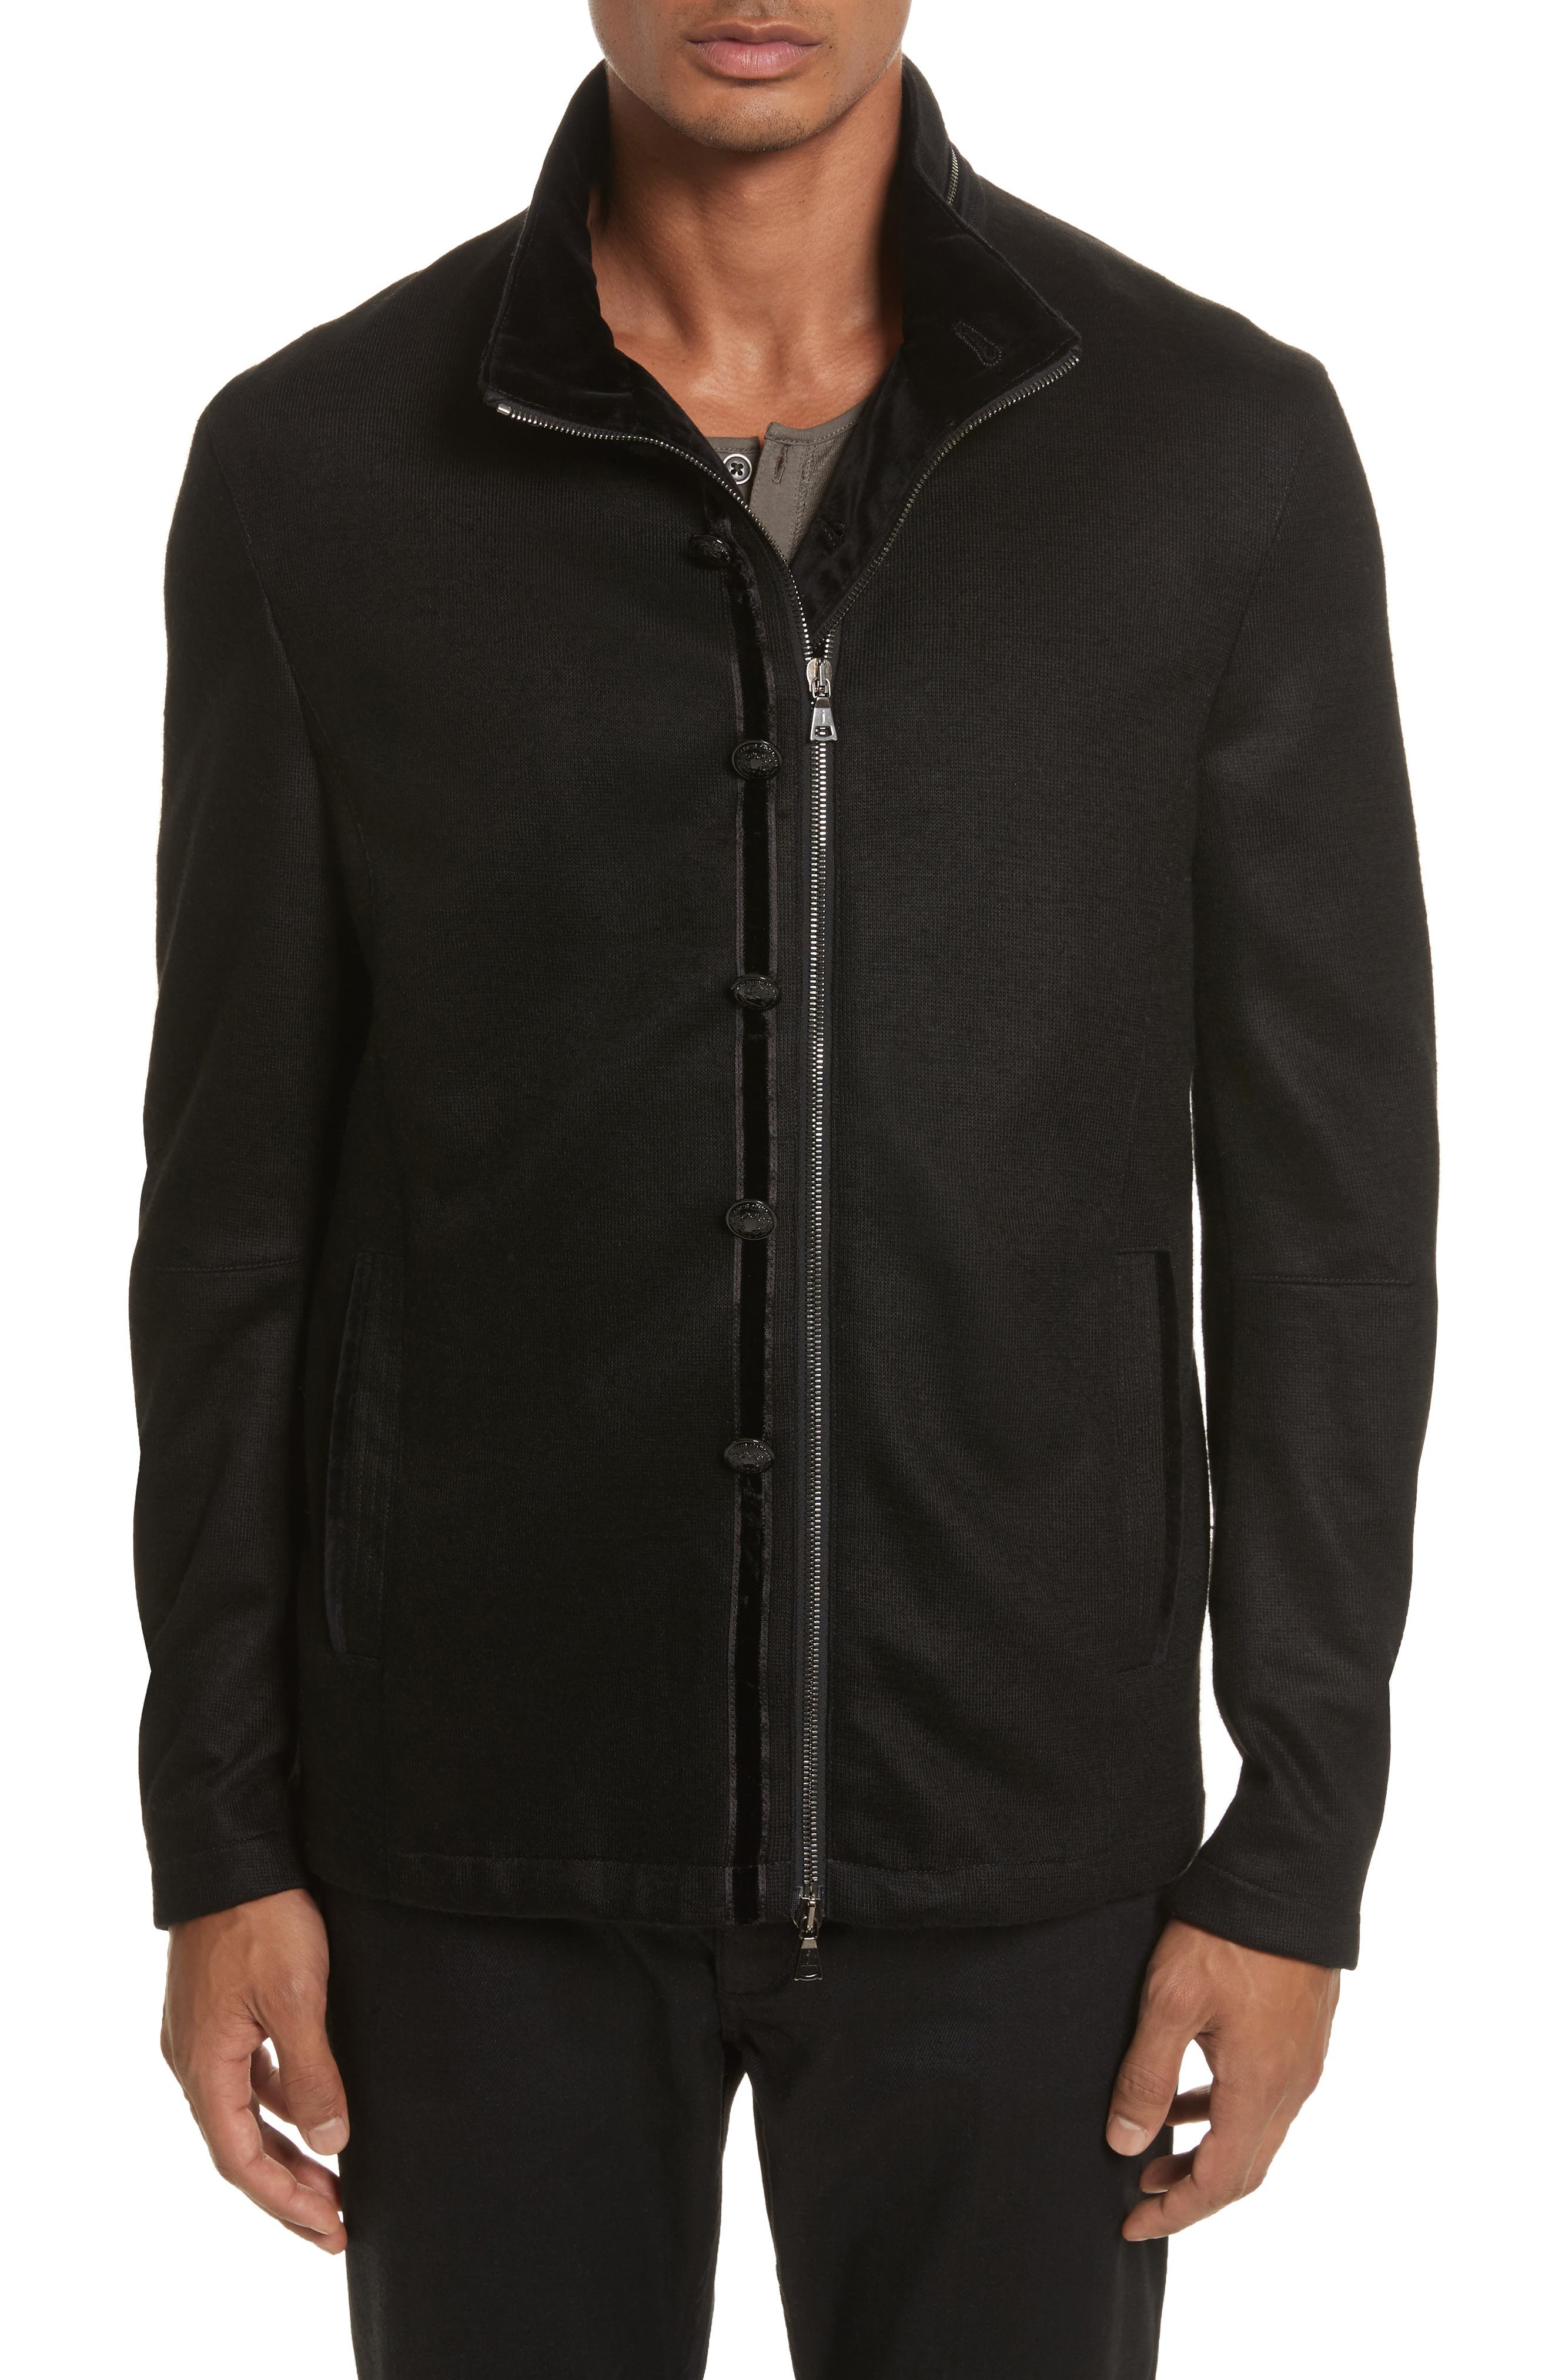 Cotton & Wool Jacket,                         Main,                         color, Black